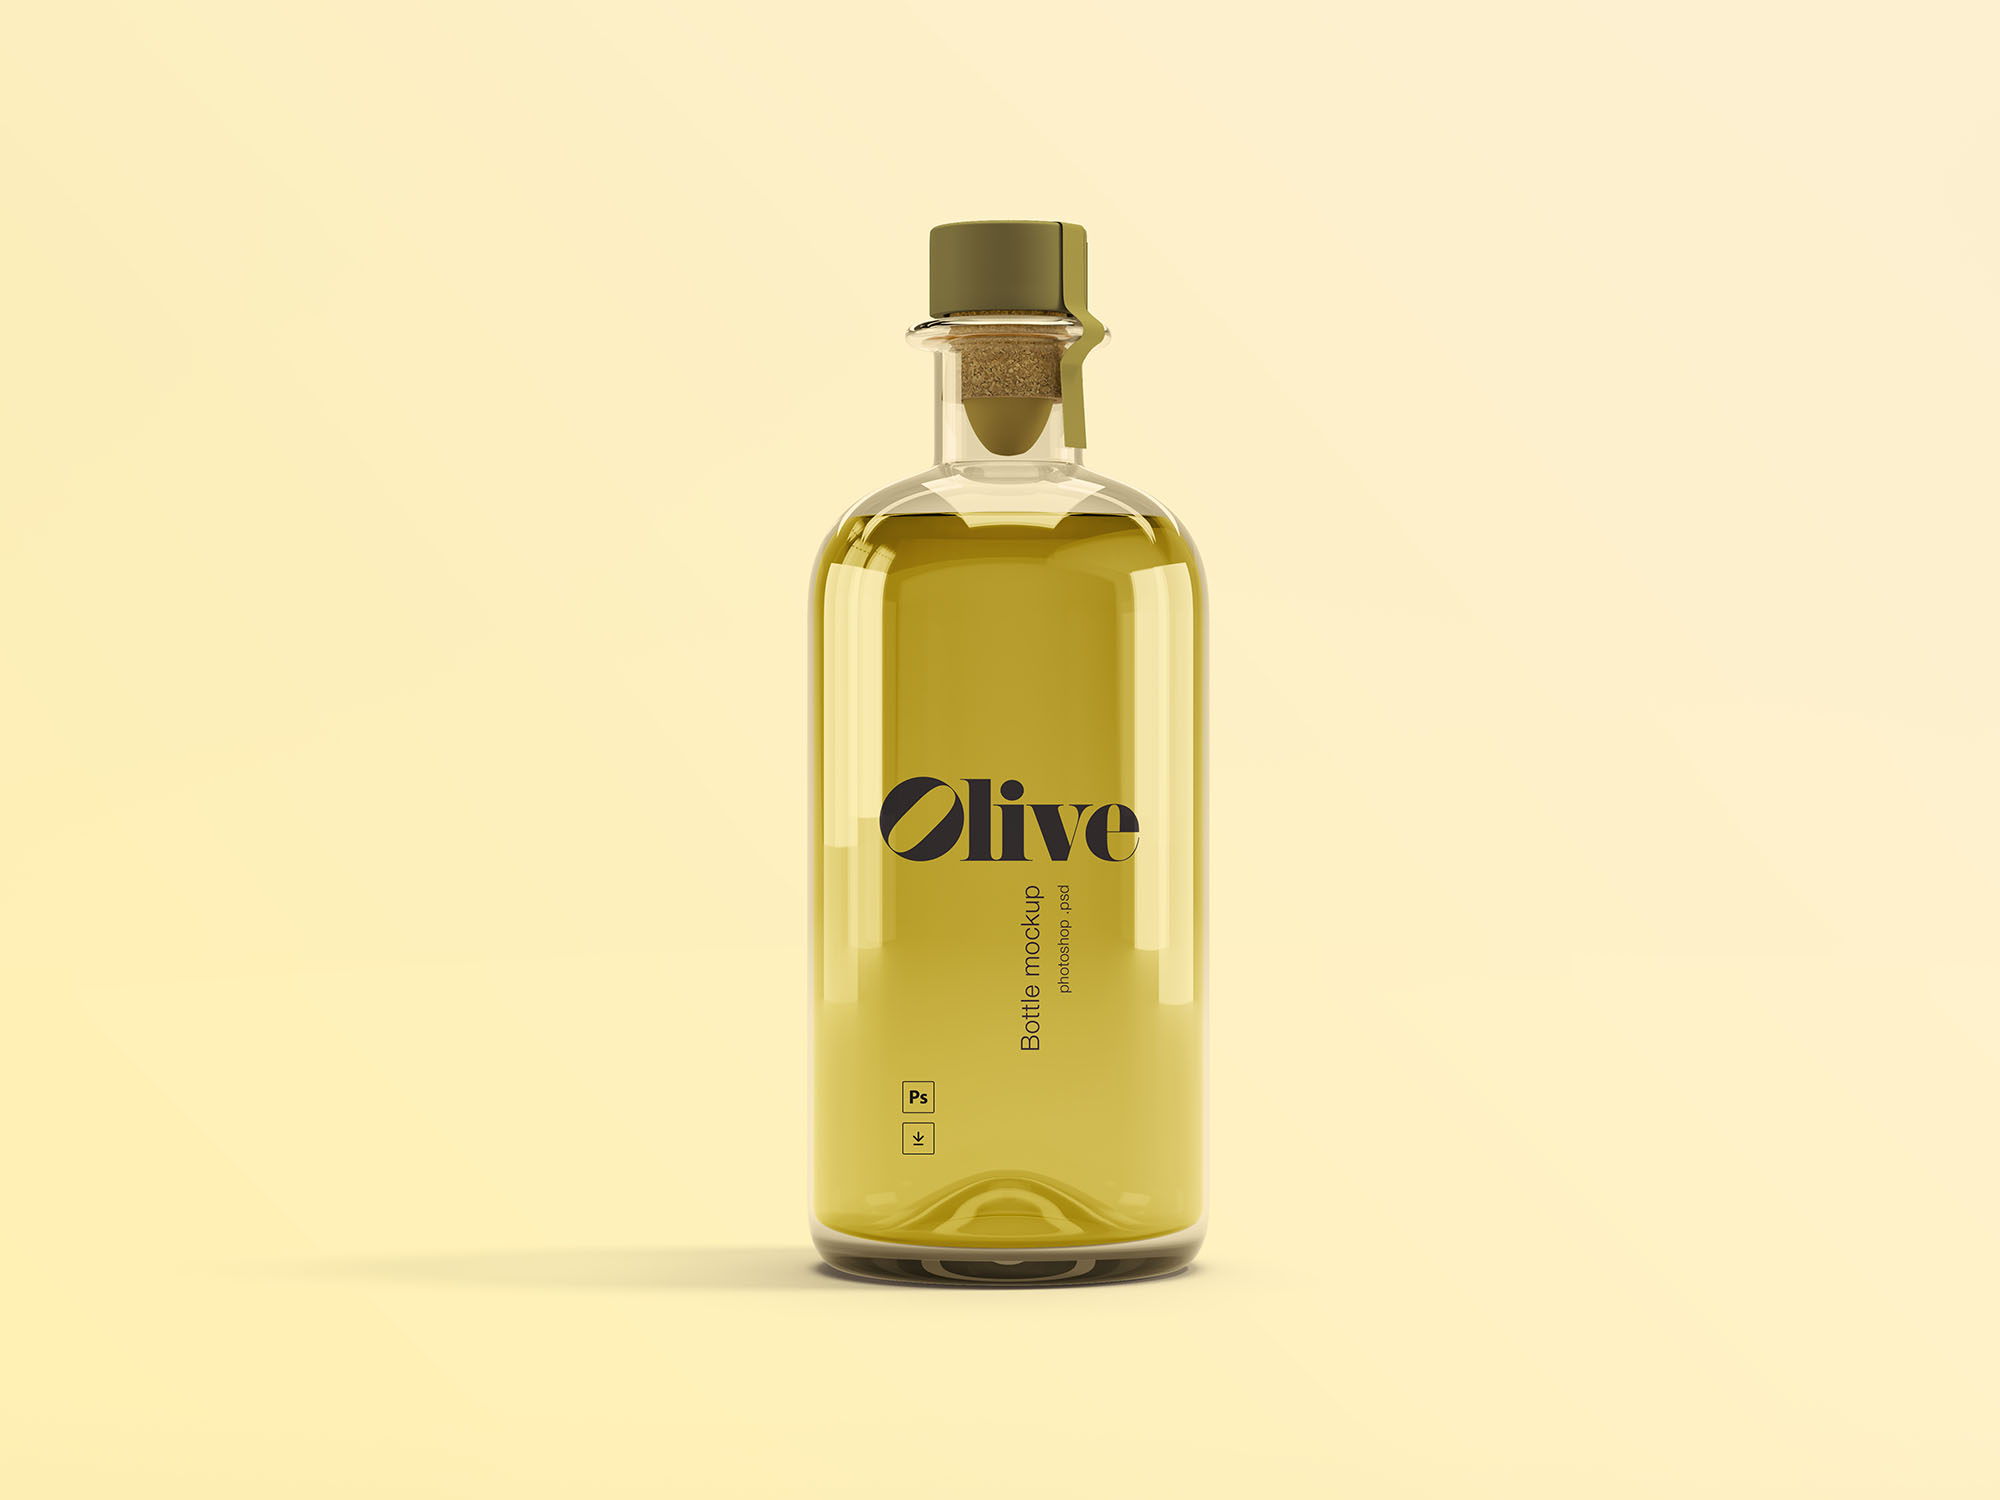 Free Olive Oil Bottle Mockup